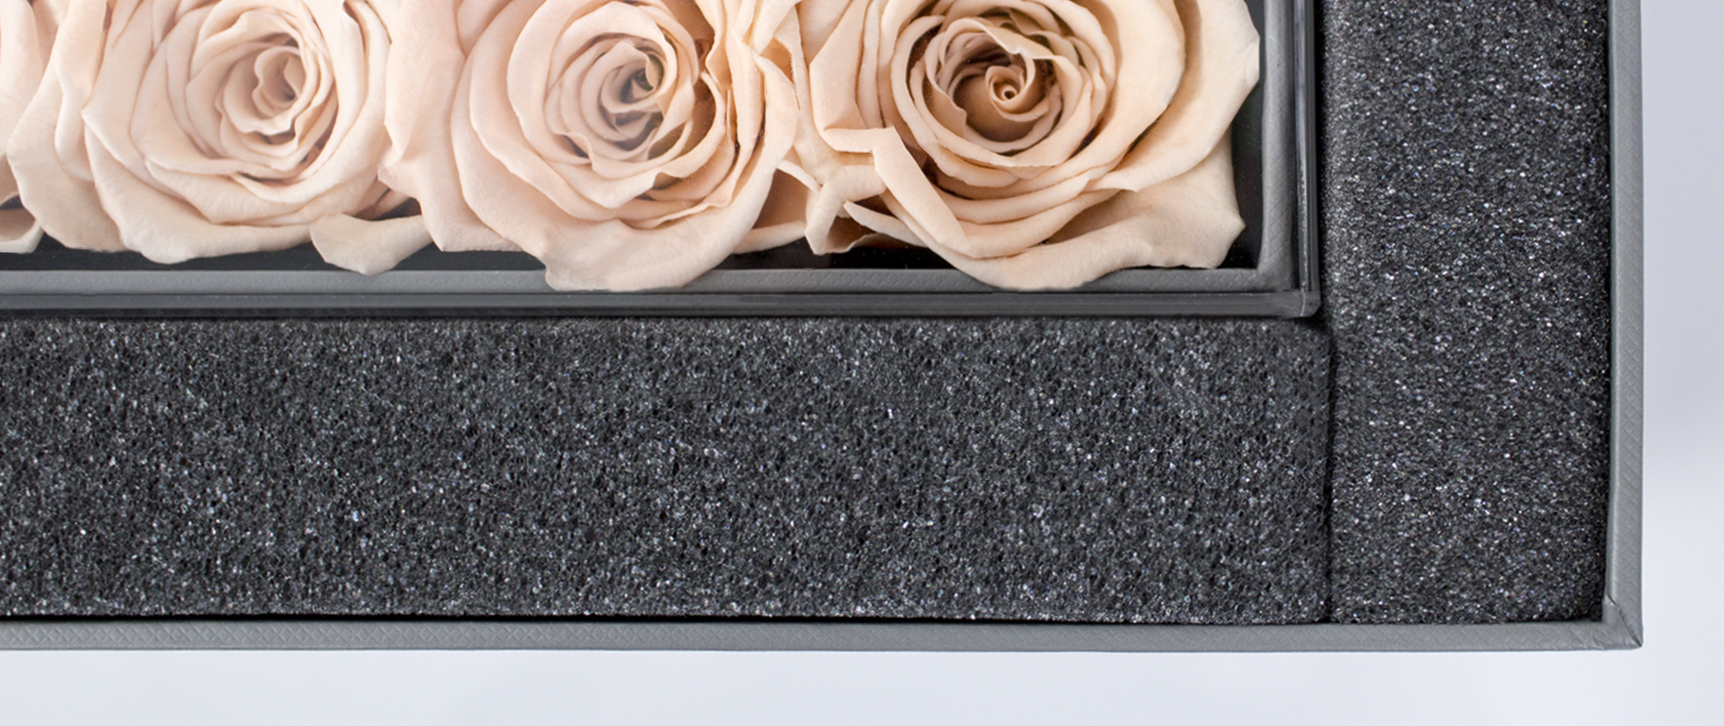 Securely Protected - Quality is important to us, which is why our Meraki team packaged your floral box inside an outer Meraki Box to serve as another layer of protection during the shipping process. Within your outer box, your main rose product sits comfortably between layers of foam to prevent your gift from being damaged.